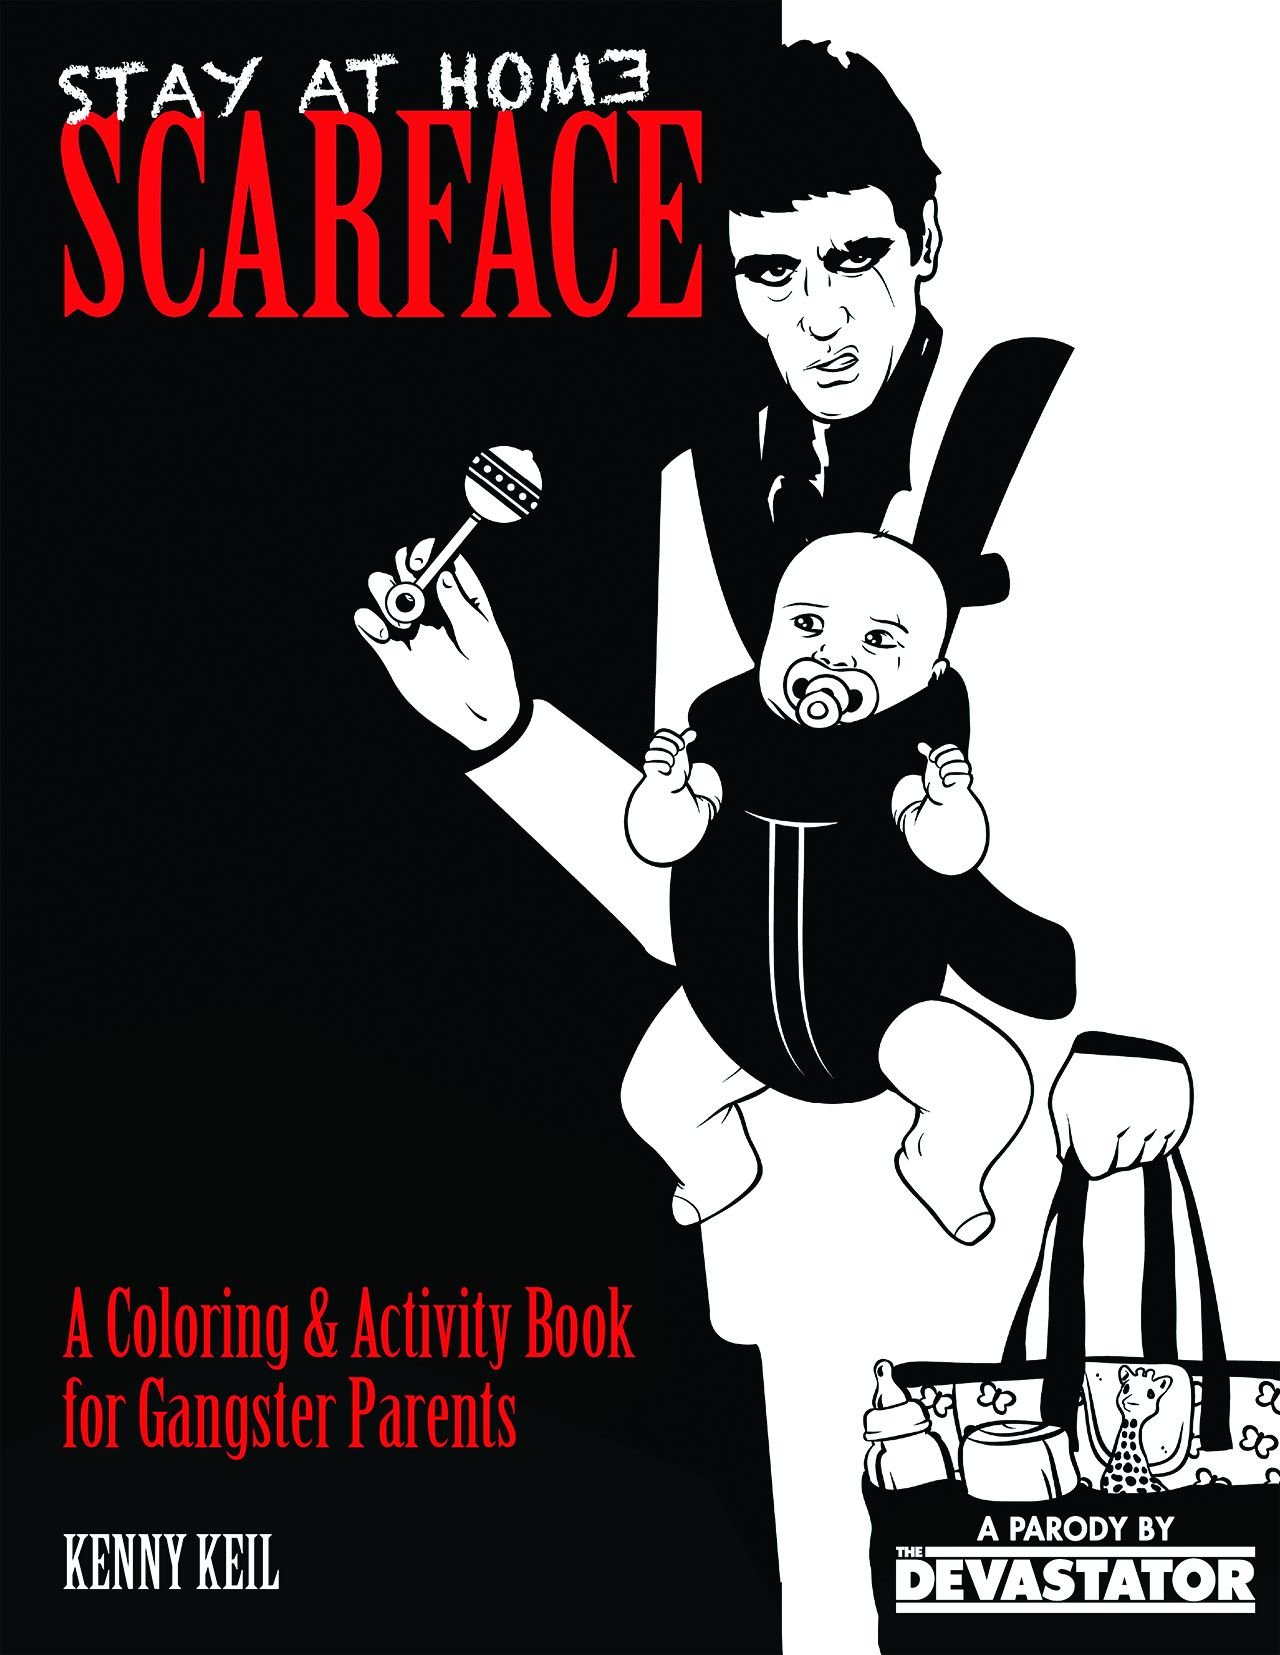 amazon com stay at home scarface a coloring u0026 activity book for